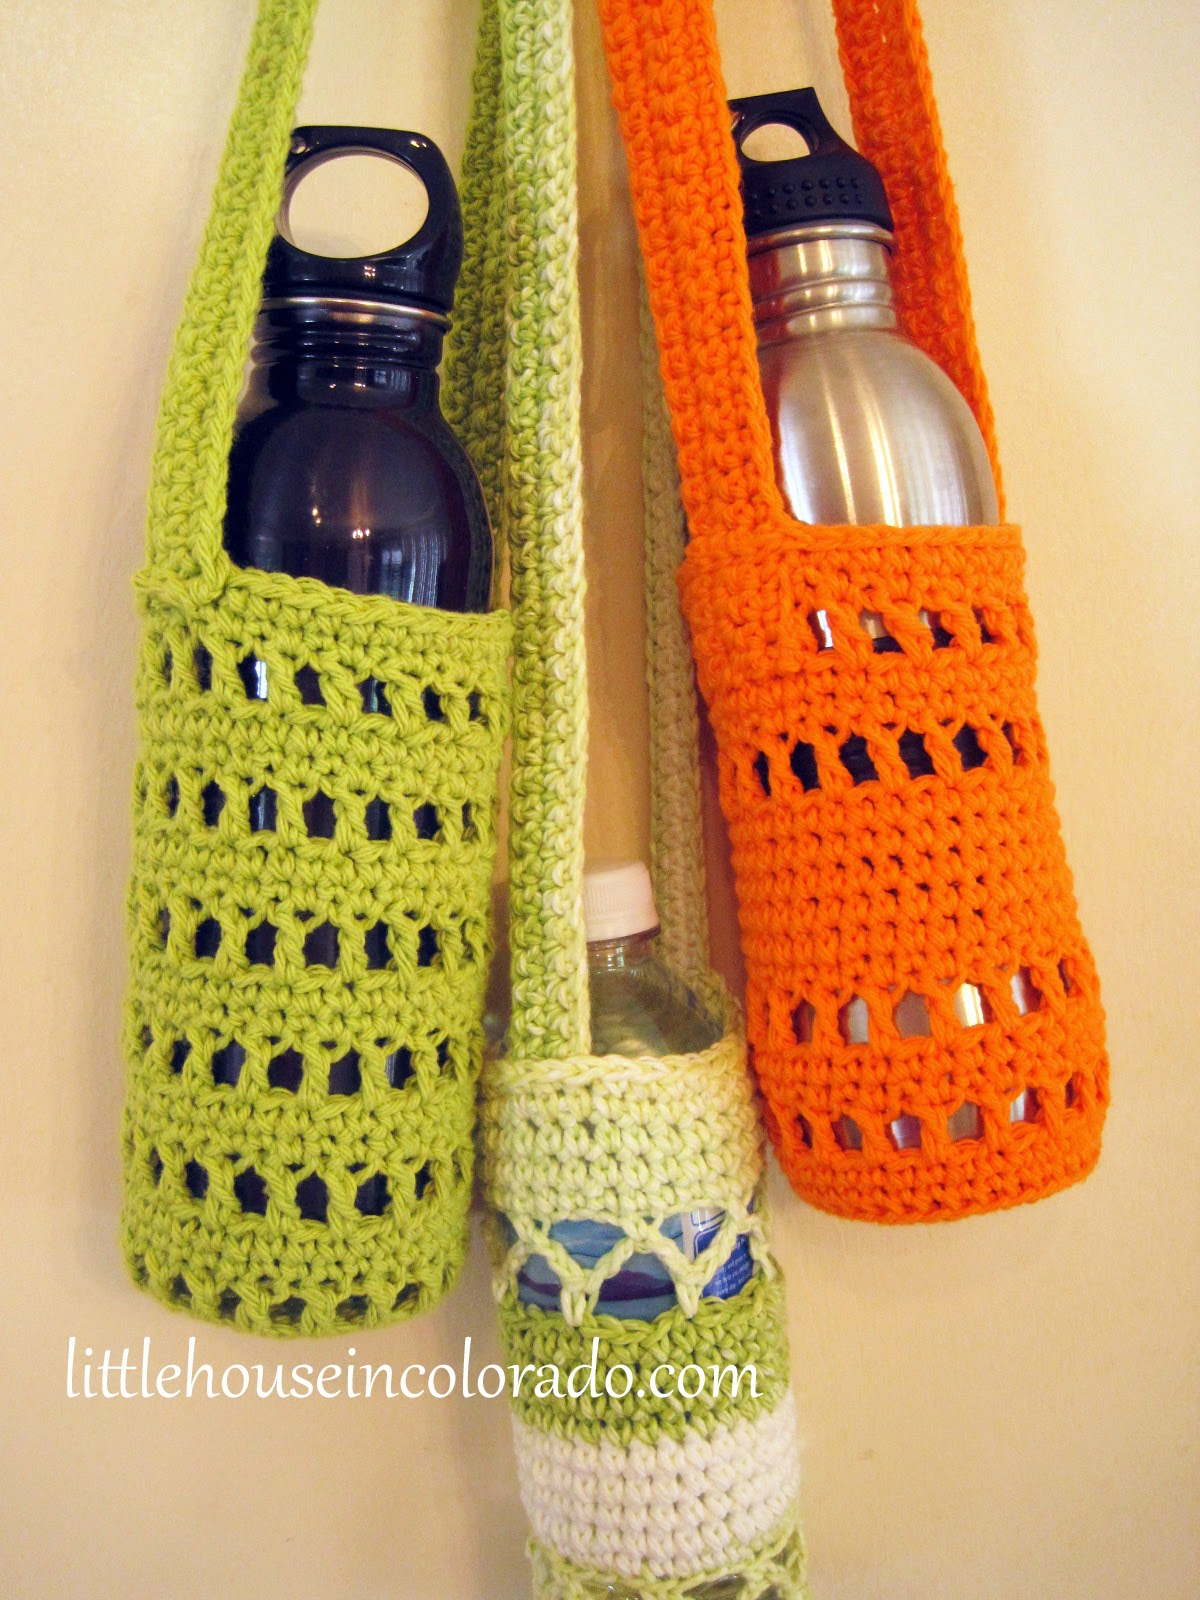 Little house in colorado pattern for crochet water bottle holders i have done several variations for several different sized bottles all using the same basic pattern crochet water bottle holders bankloansurffo Choice Image